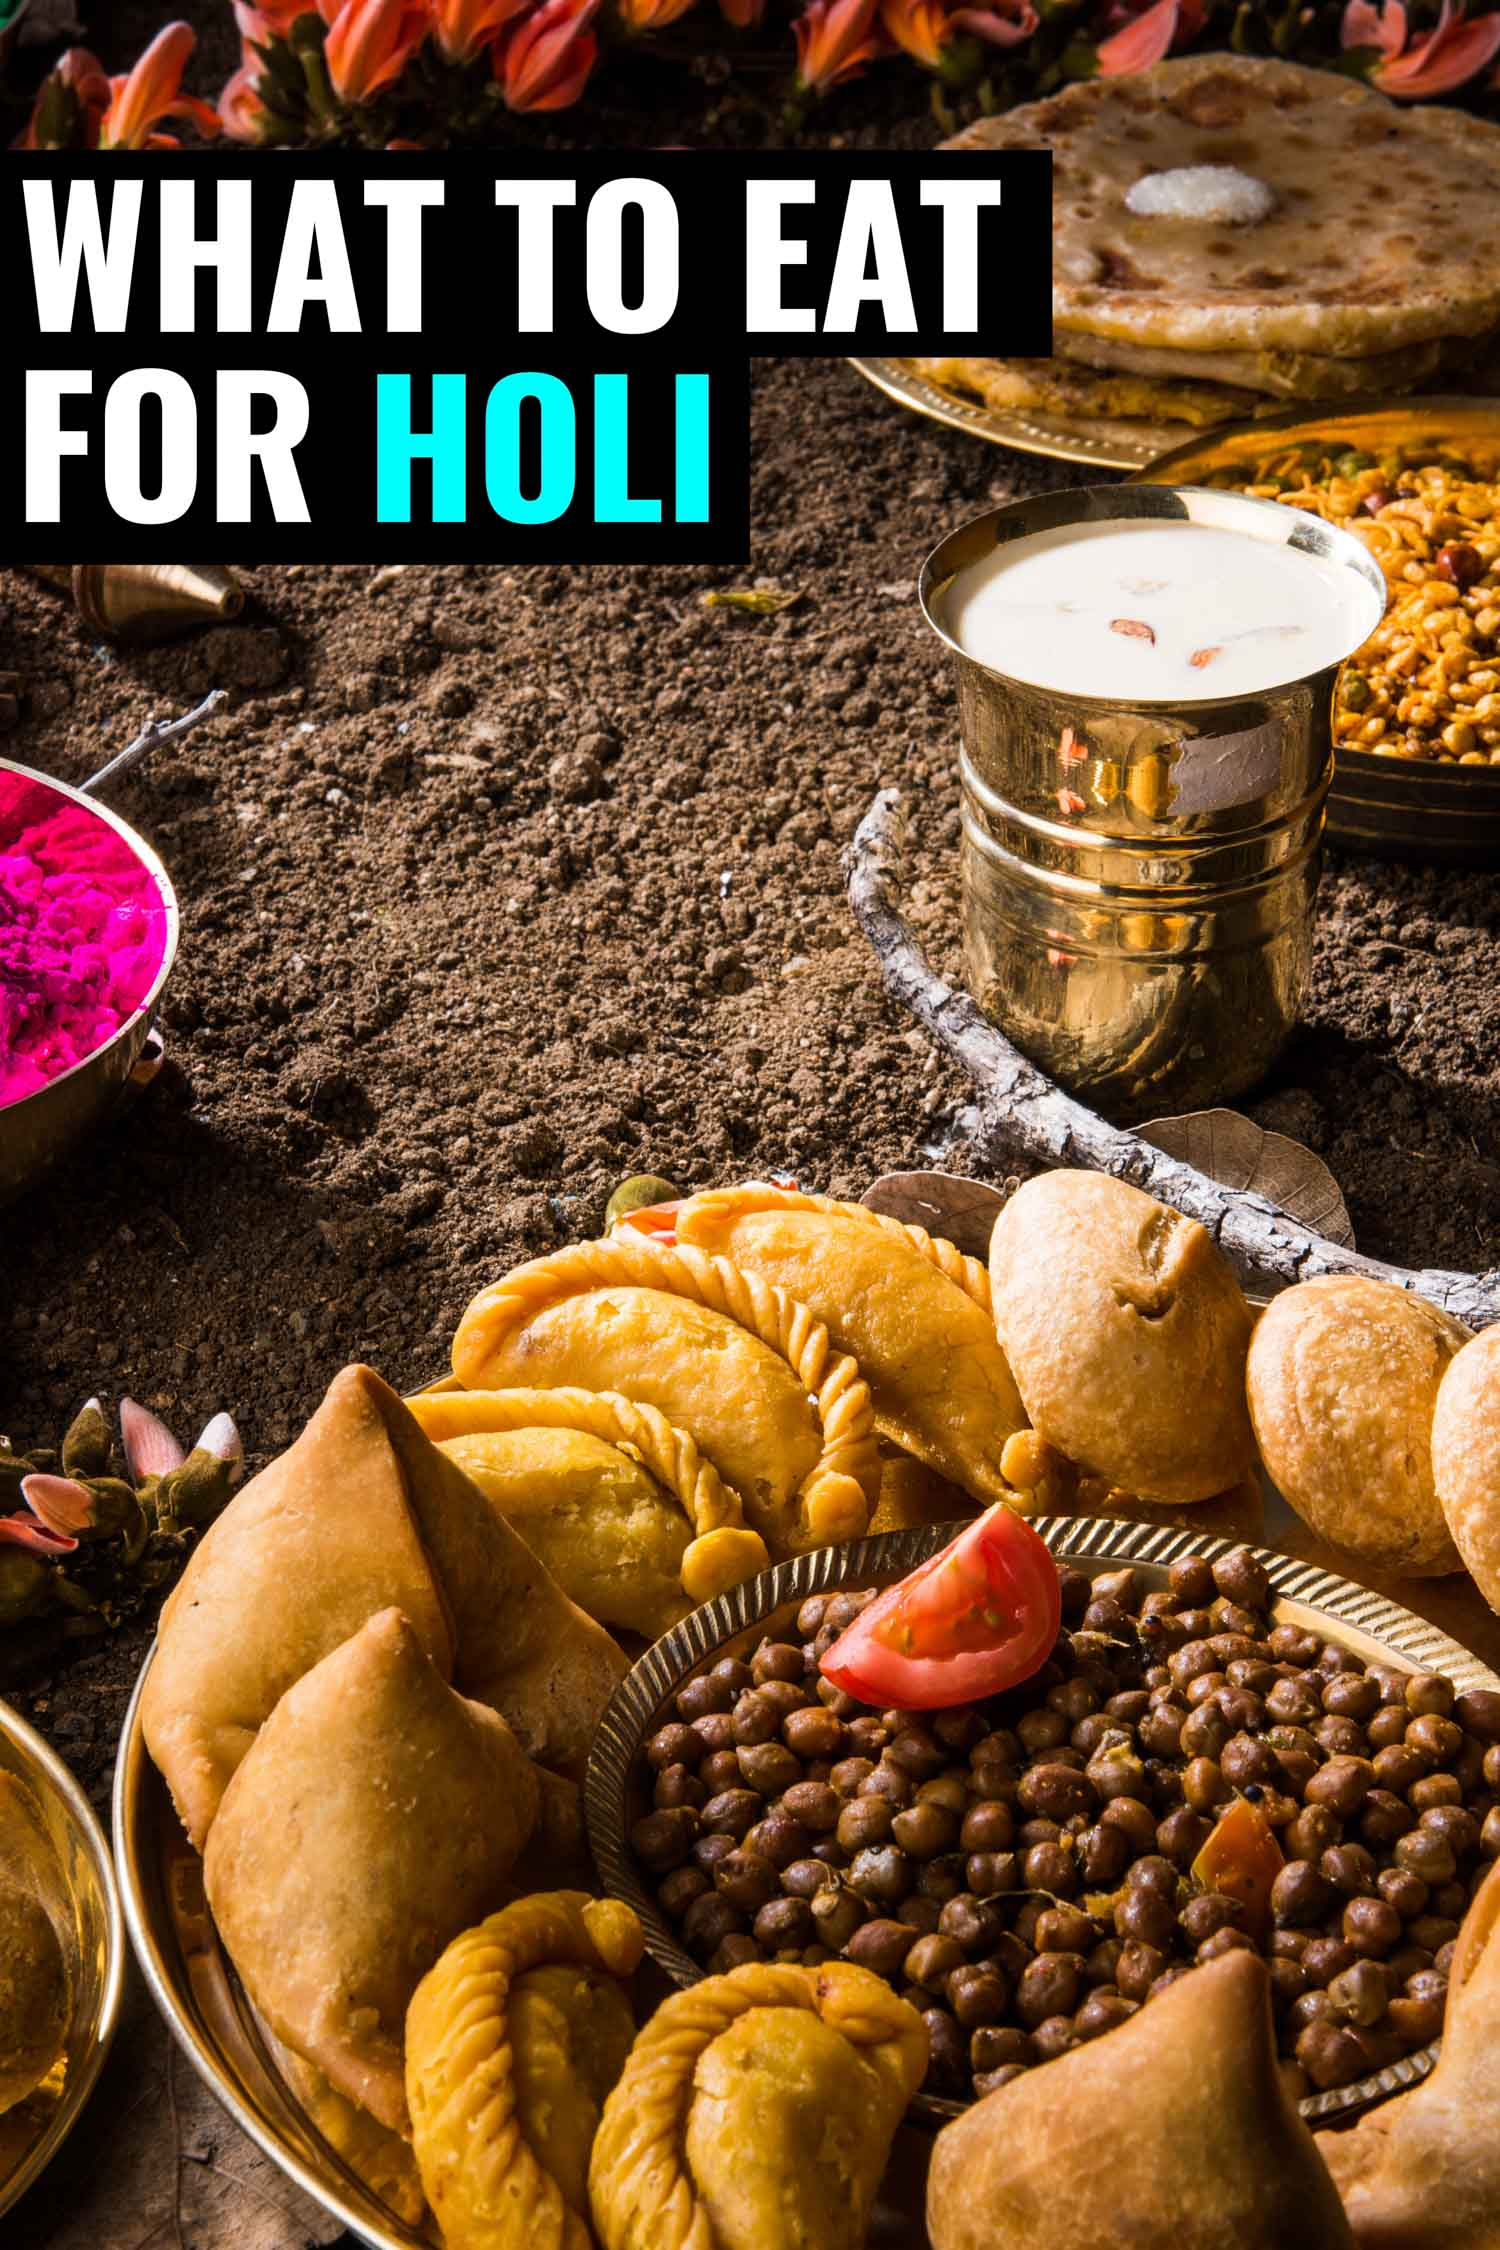 Plates of food for Holi, the colourful festival in India